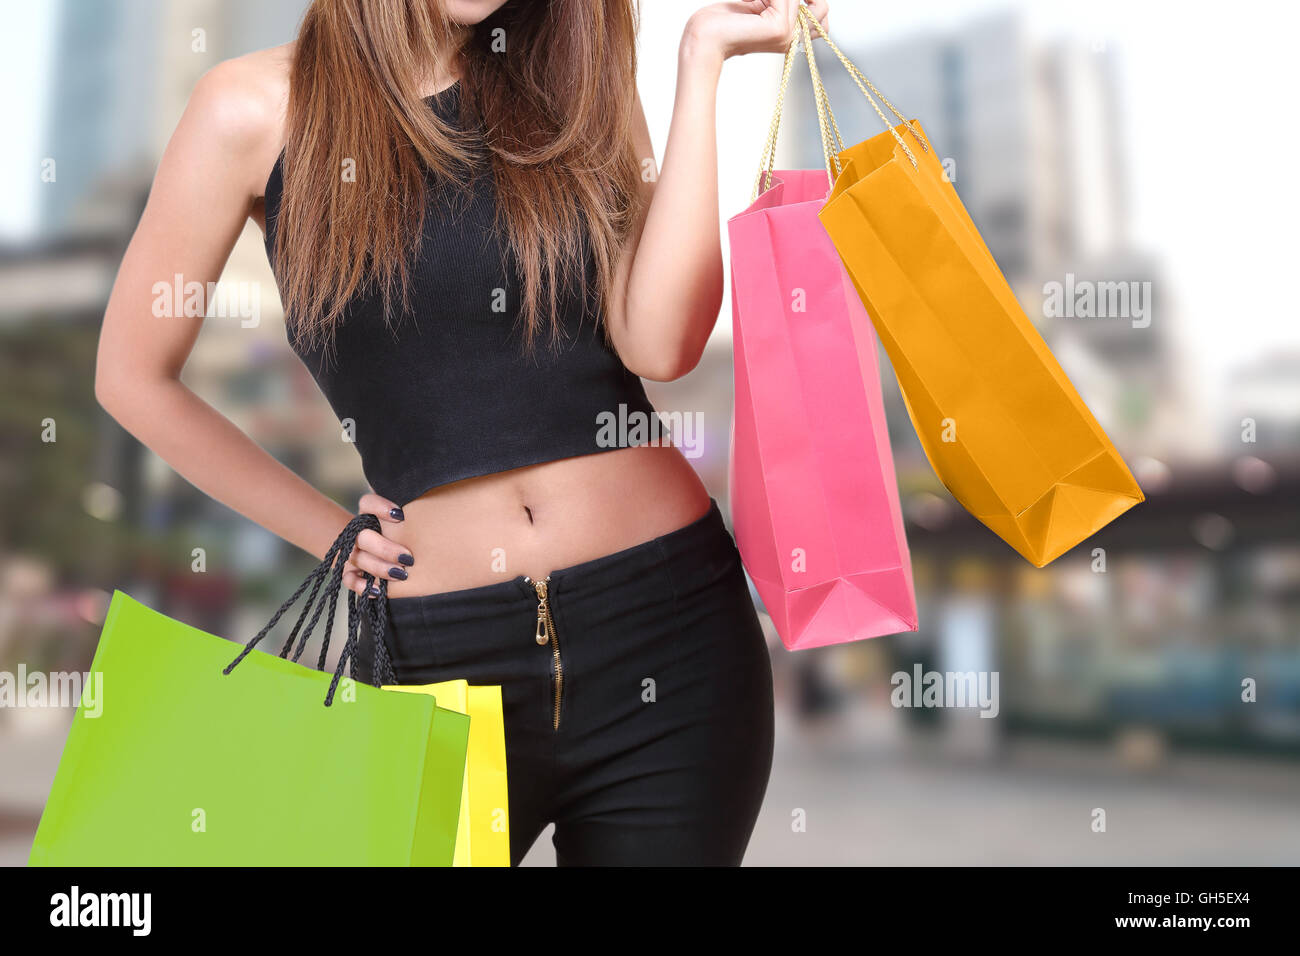 woman holding shopping bag and go shopping with blurred background - Stock Image